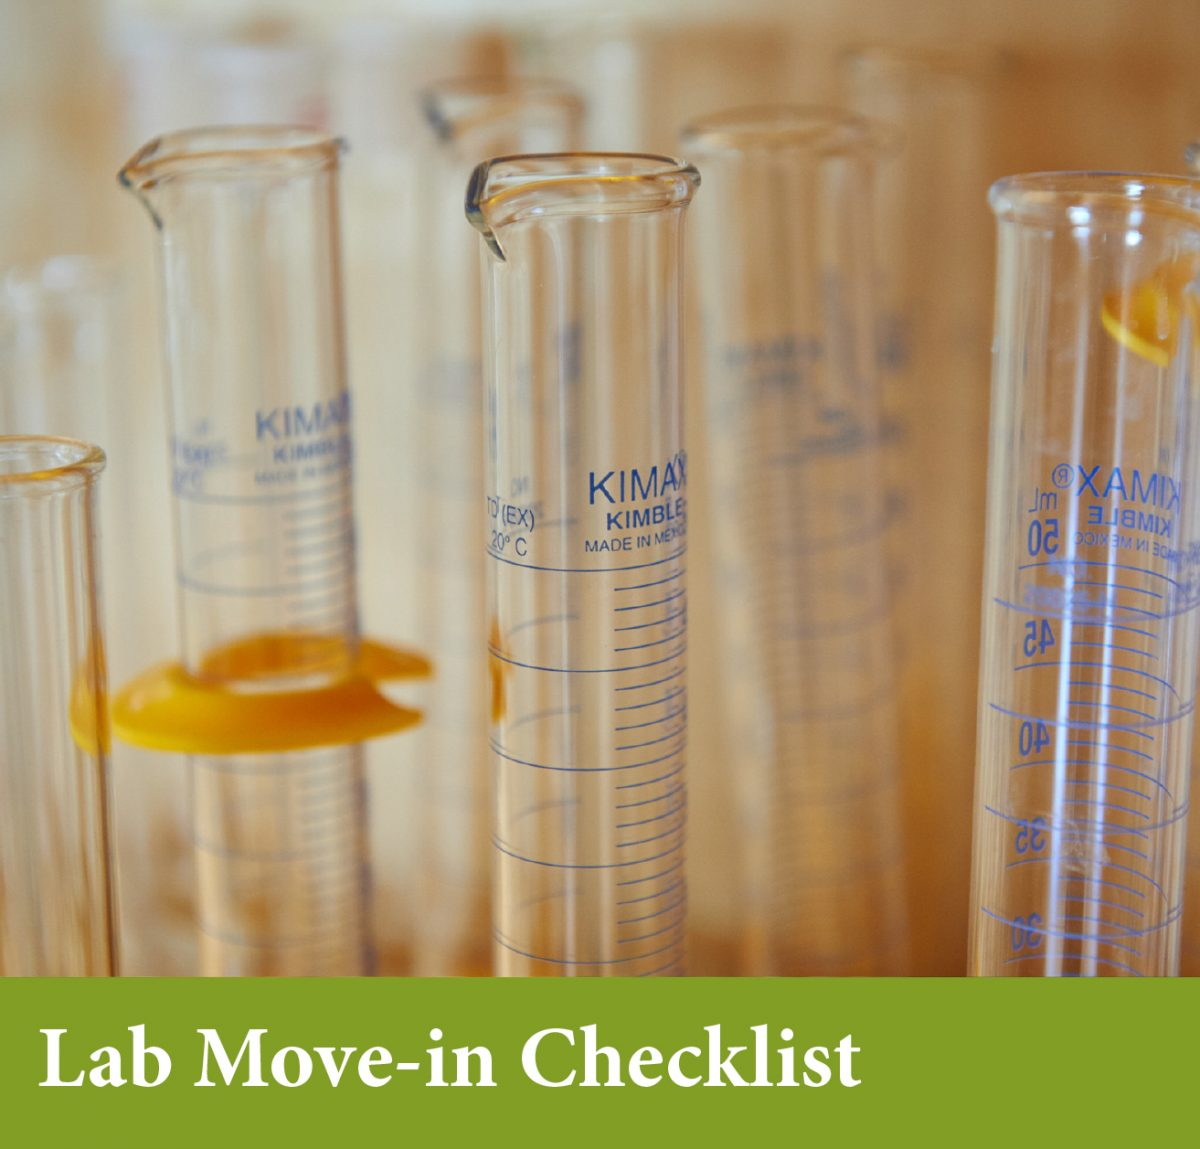 Lab Move-in Checklist